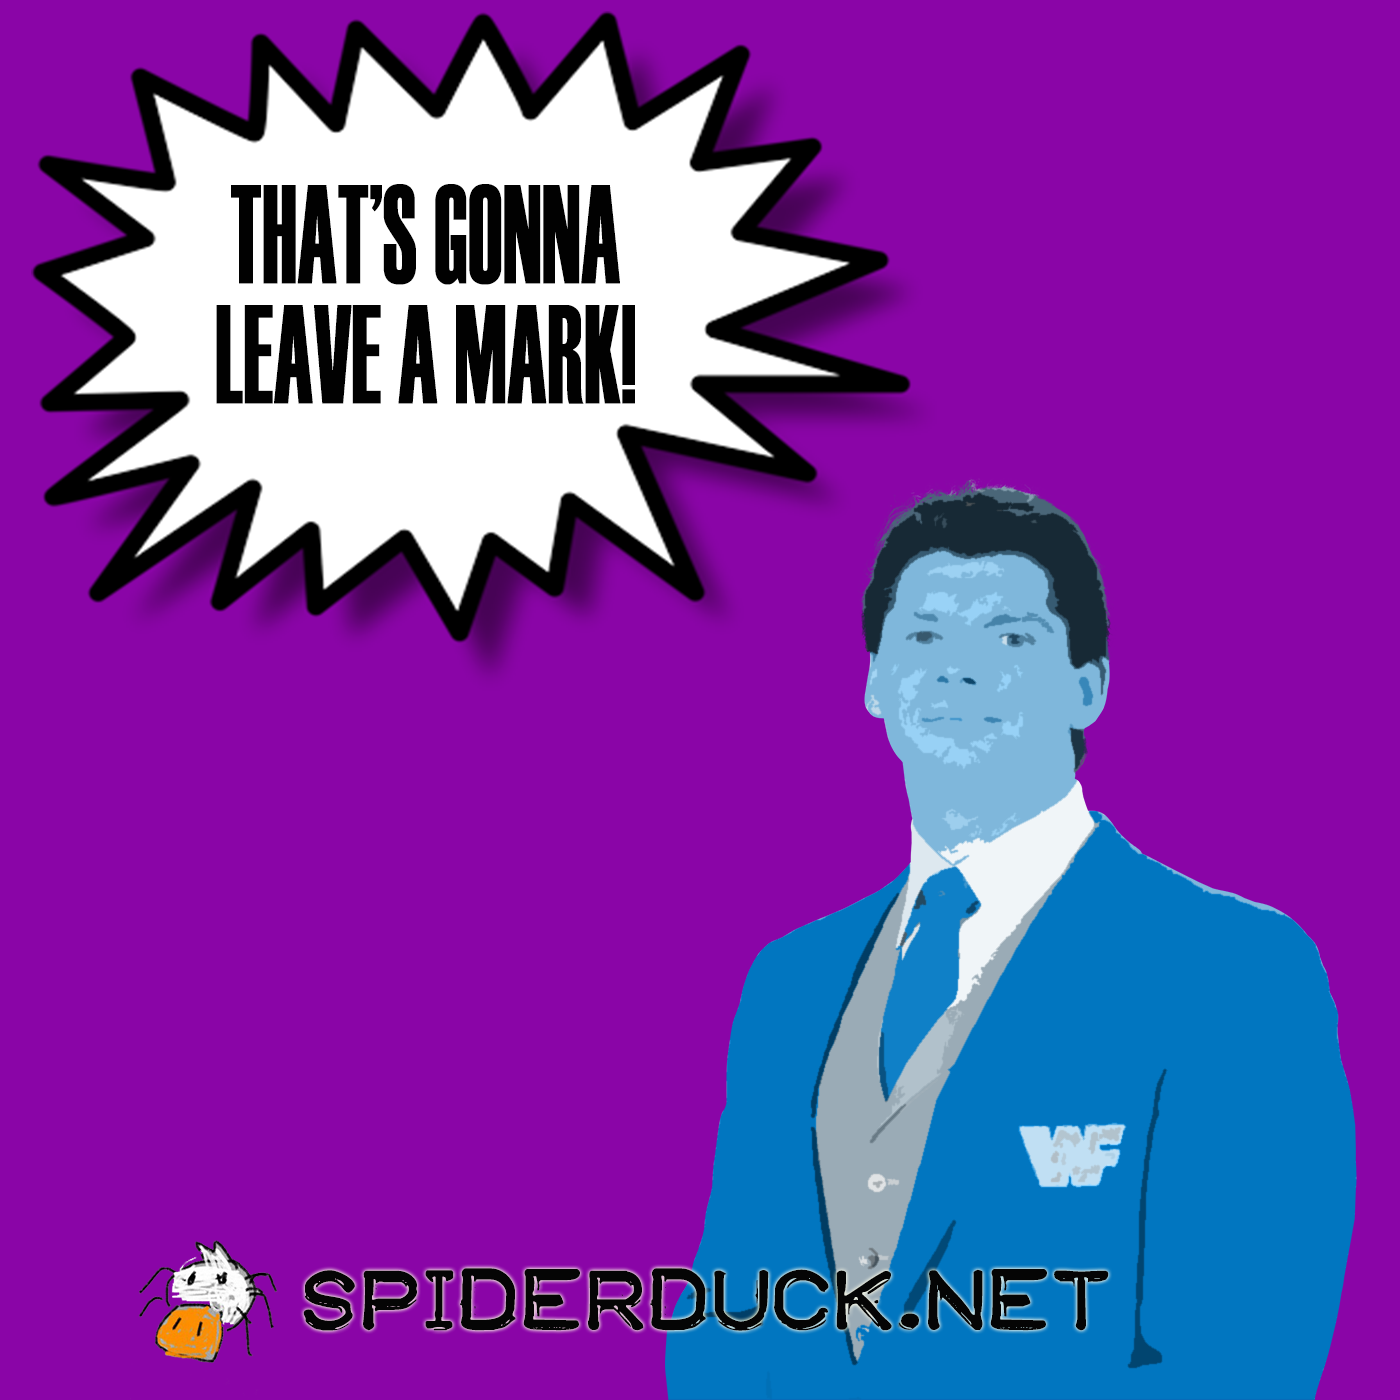 That's Gonna Leave A Mark - Spiderduck